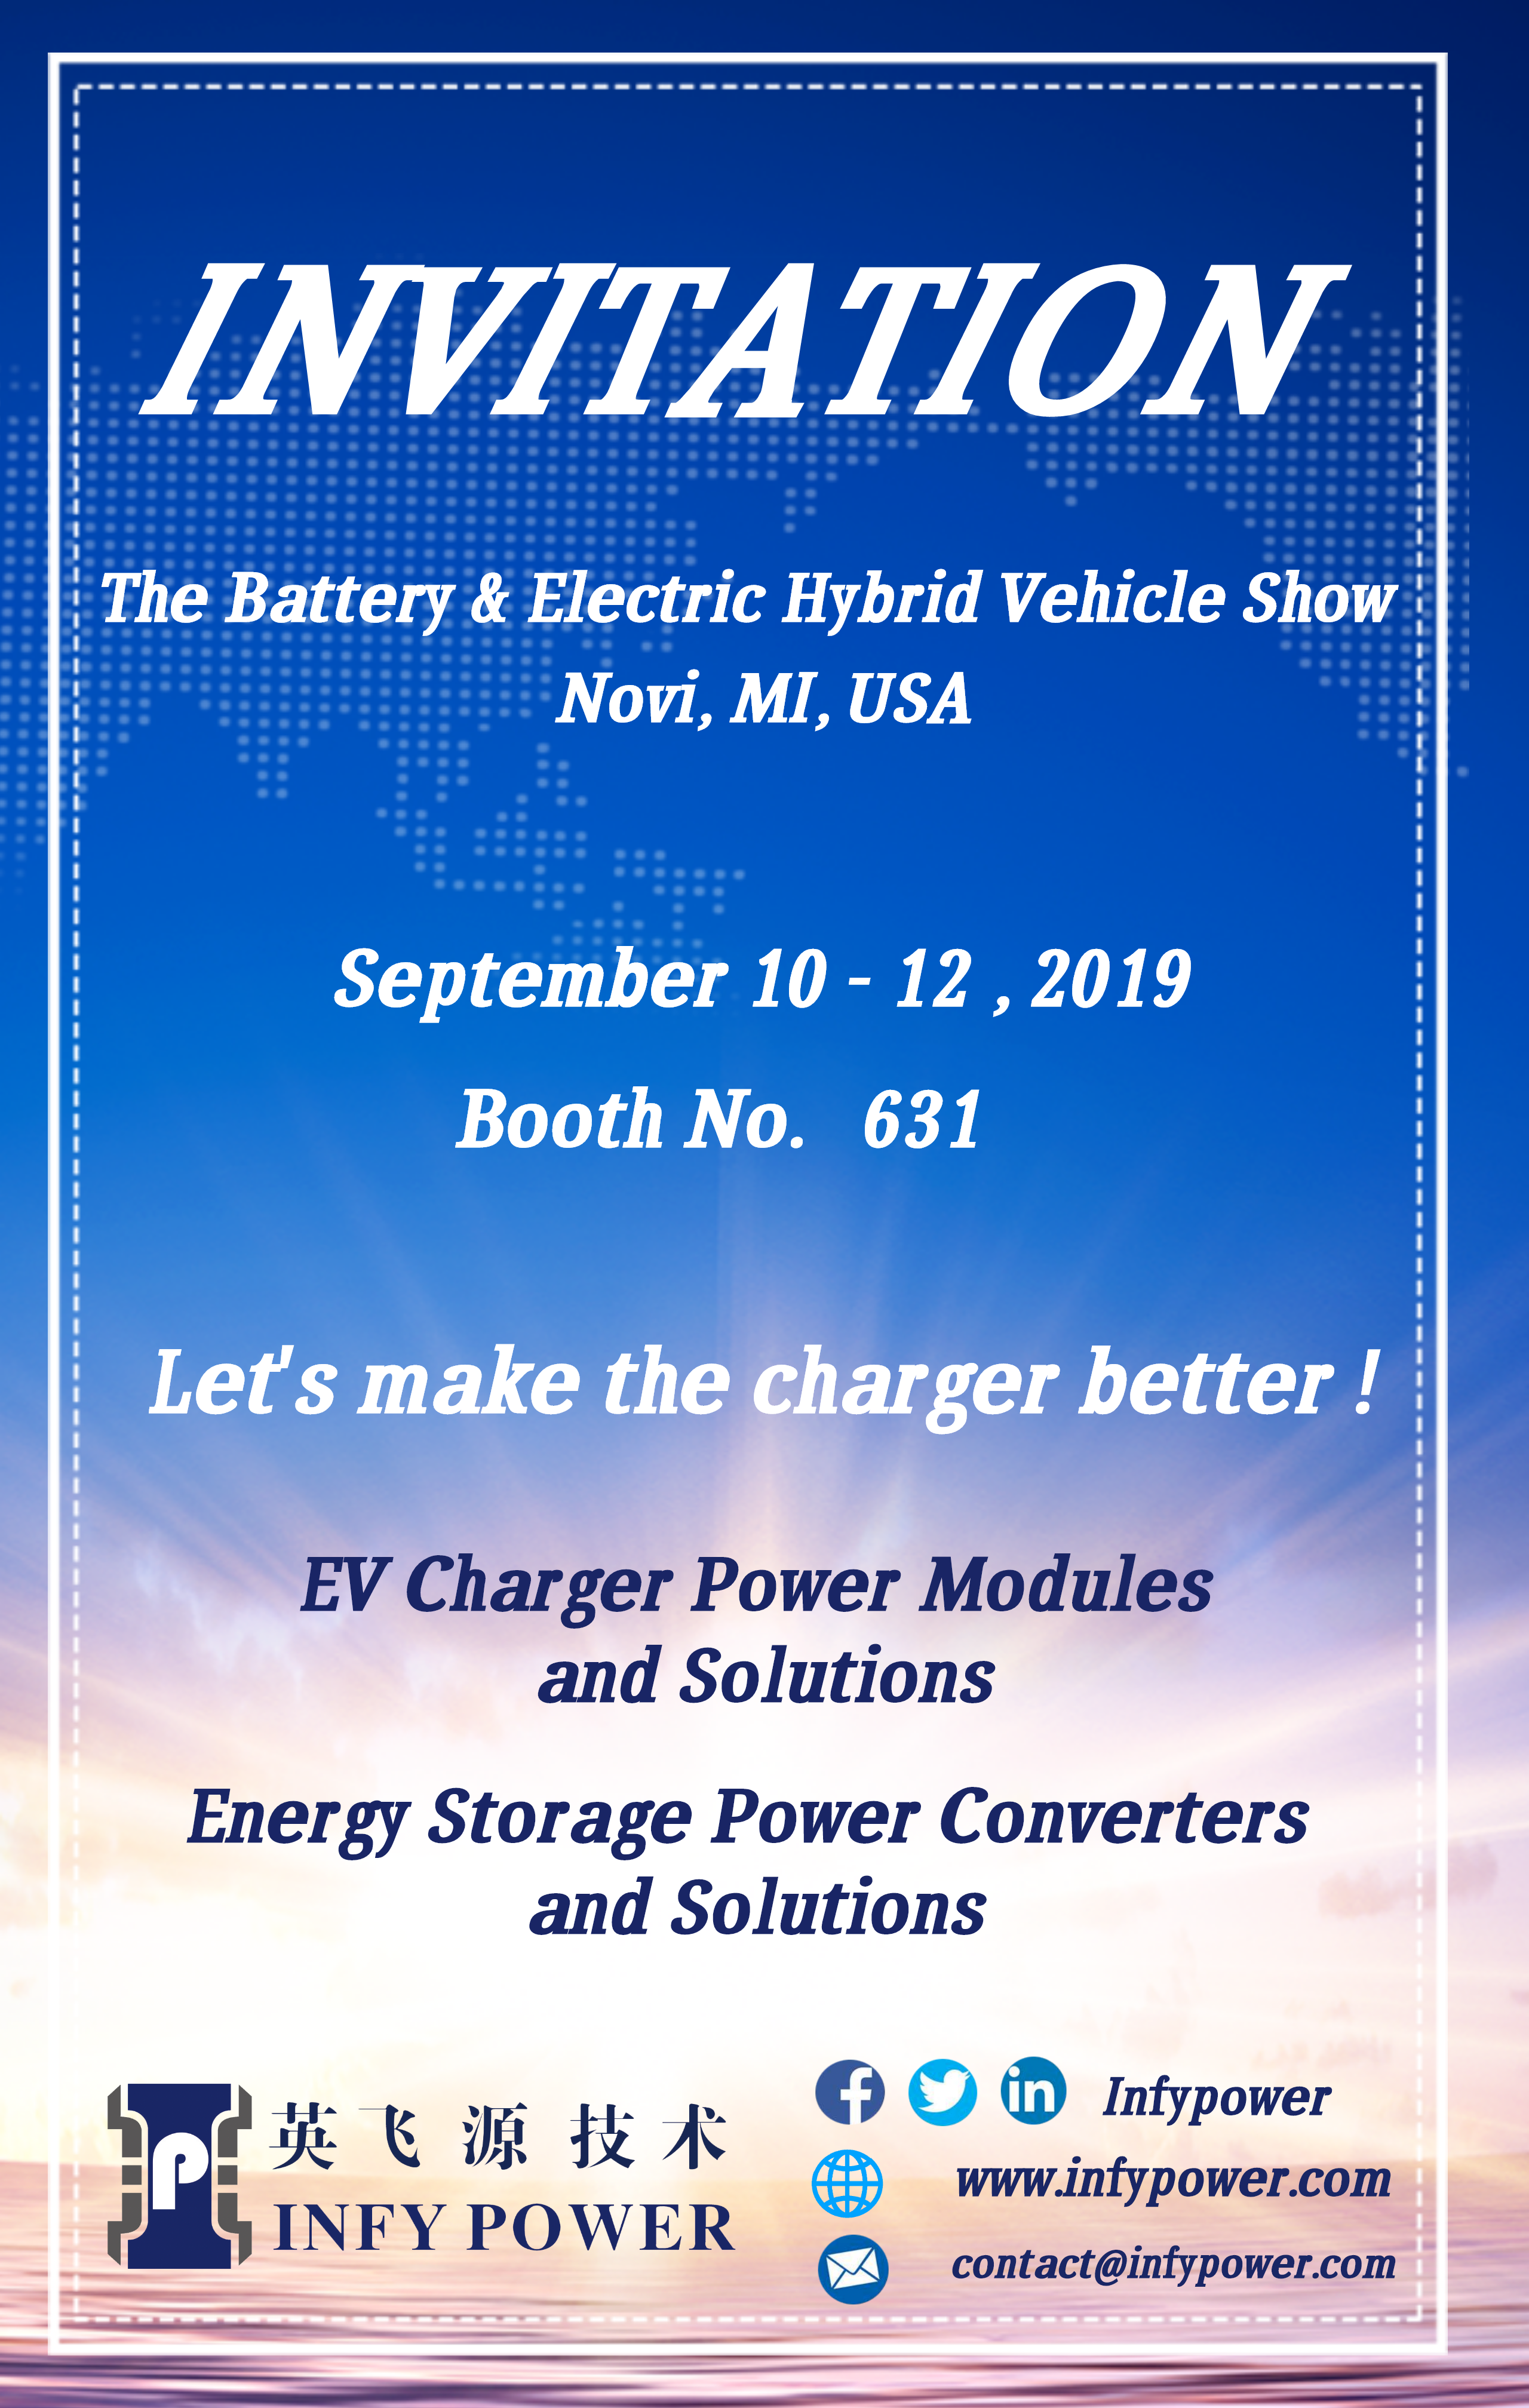 Infypower # ka USA # The Battery & Electric Hybrid Koloi Show